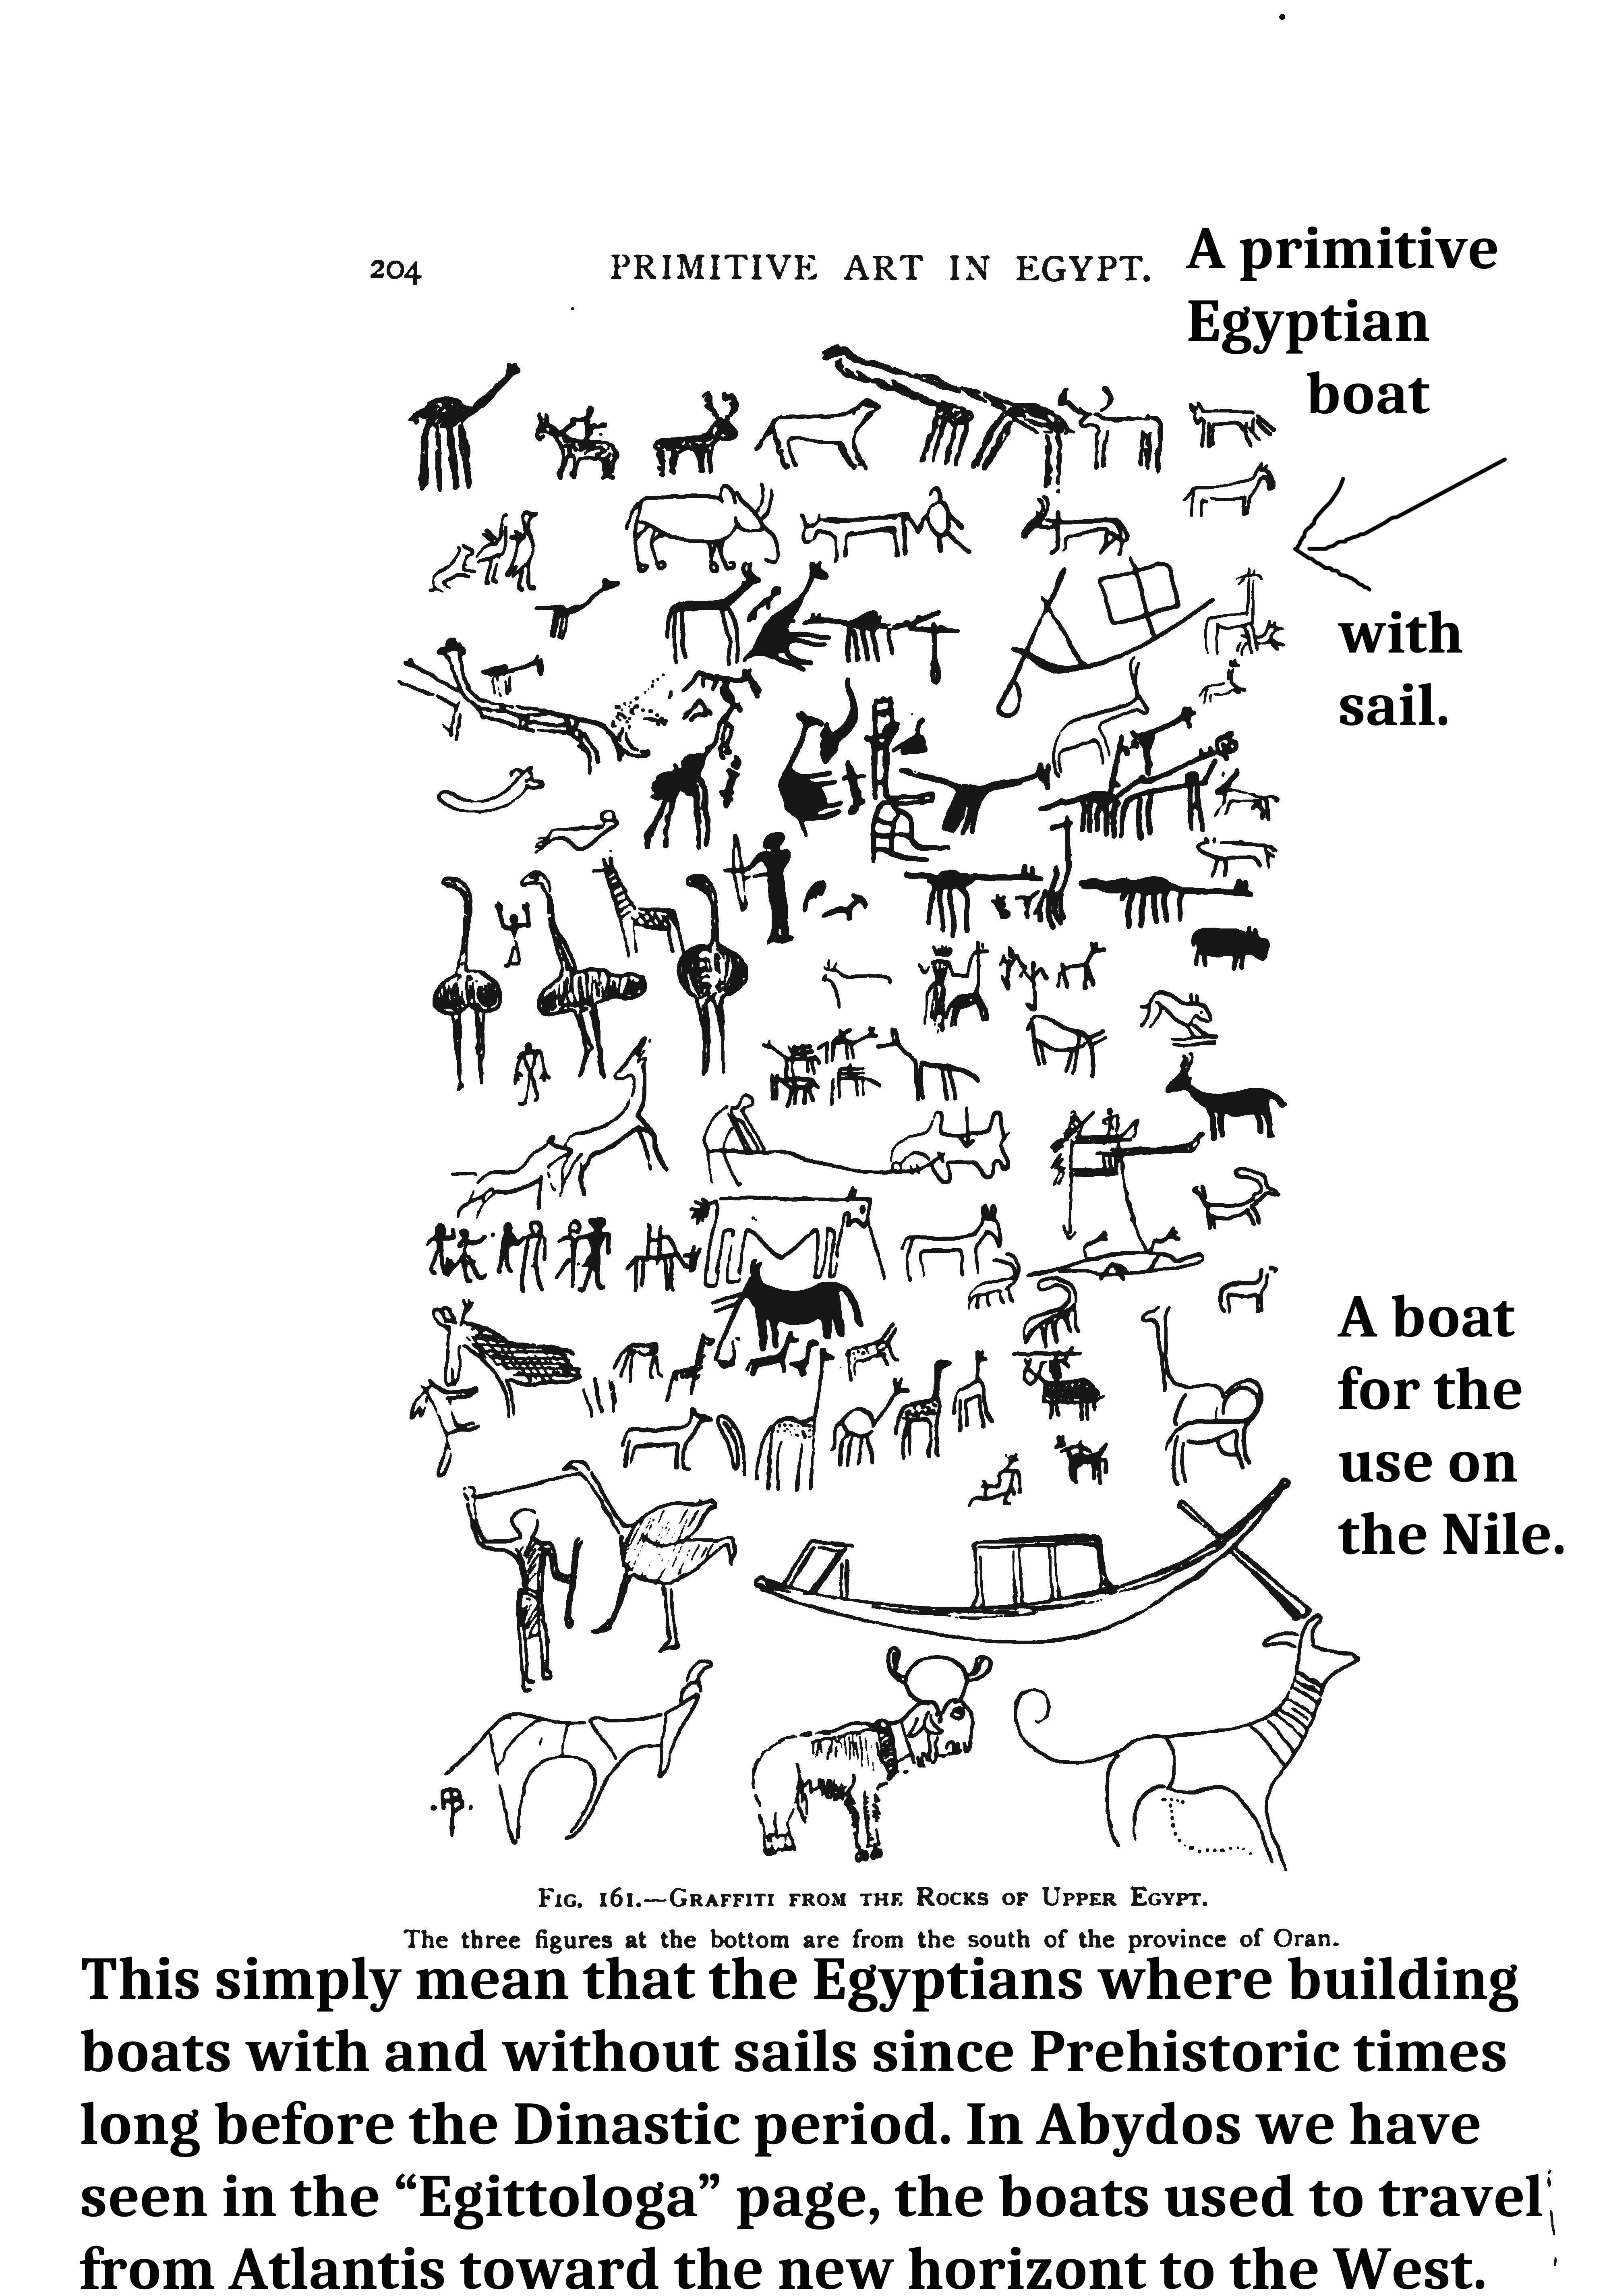 Pages from Primitive Egyptian Art - Jean CapartPRIMITIVE BOATS EGYPT